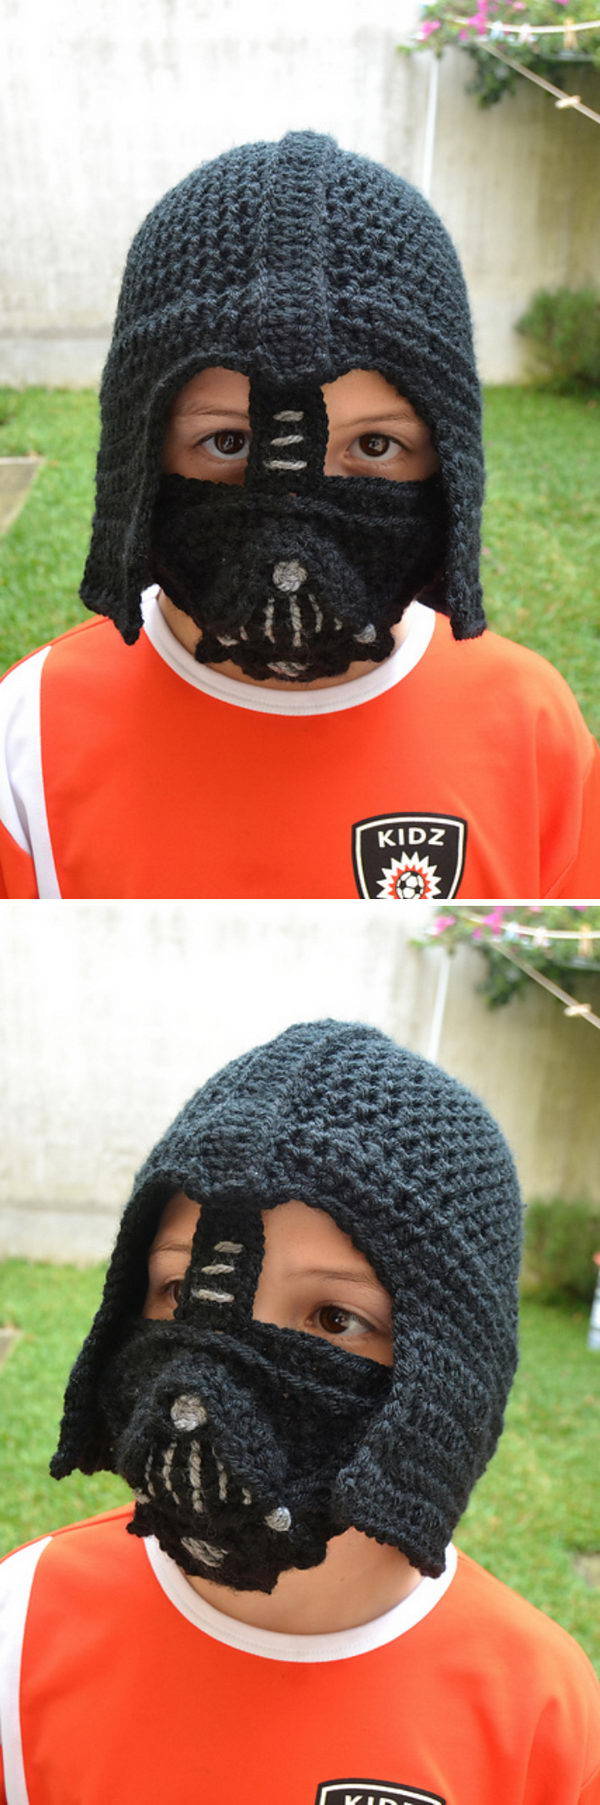 Crochet Kids Darth Vader Hat.